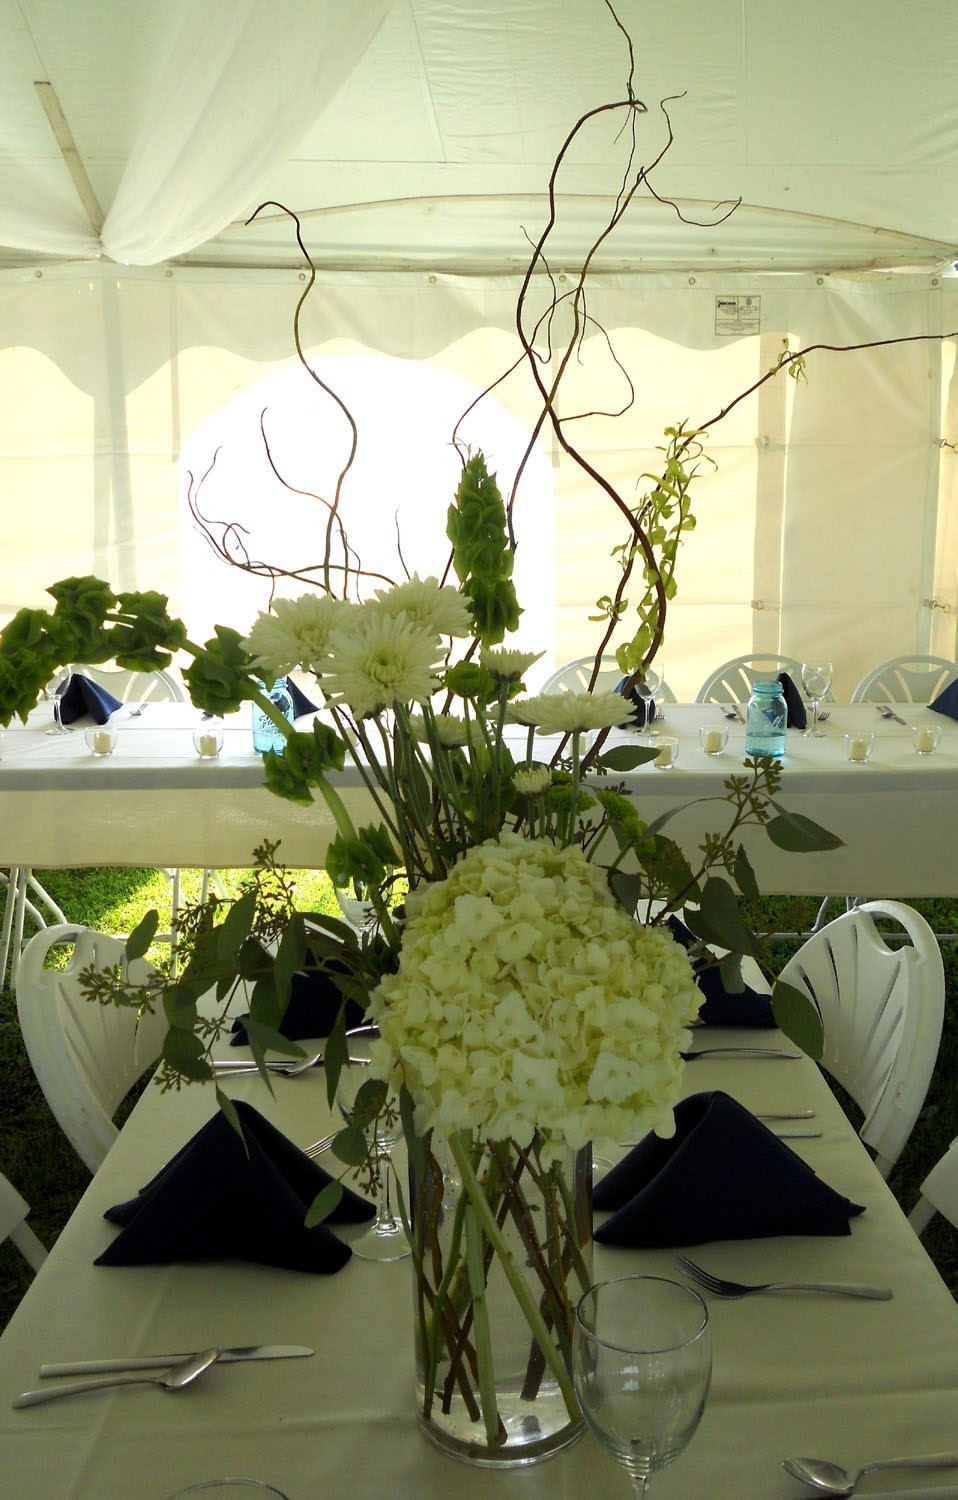 Cheap Vases Walmart Of where to Have A Wedding Reception In Nyc Brickroomh Vases Vase with where to Have A Wedding Reception In Nyc Brickroomh Vases Vase Rentals Nyc I 0d Scheme